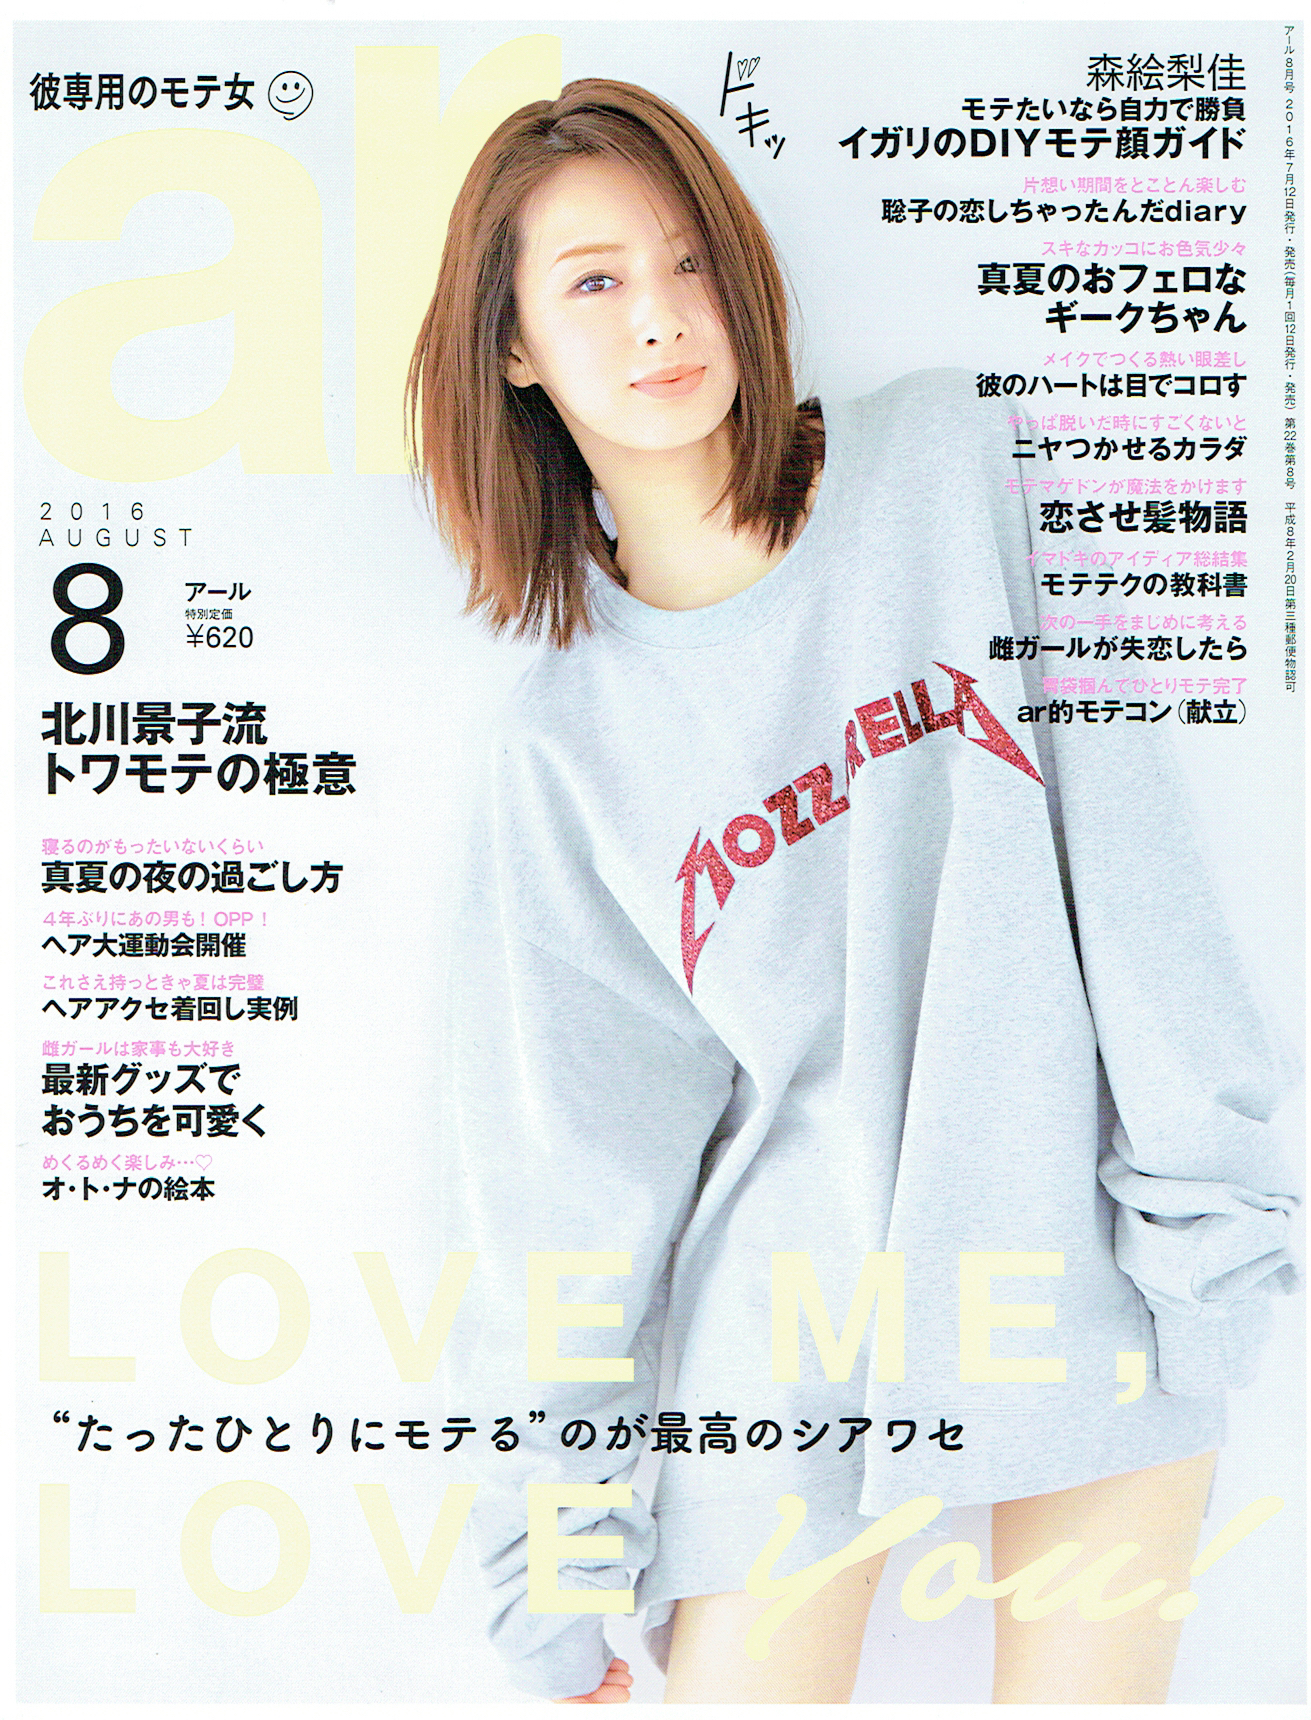 AR Magazine - Love Me, Love You - August issue